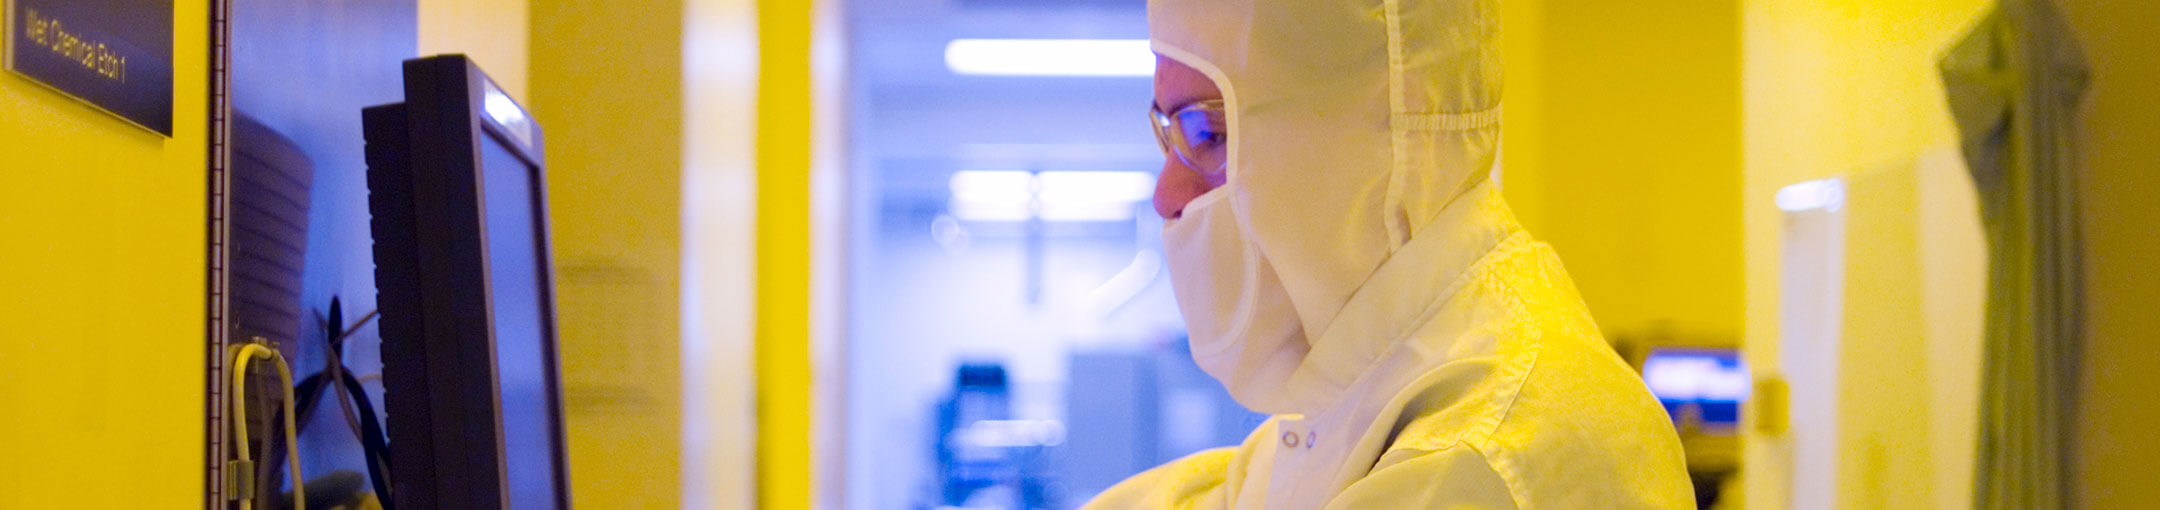 A student researcher in the microelectronics lab